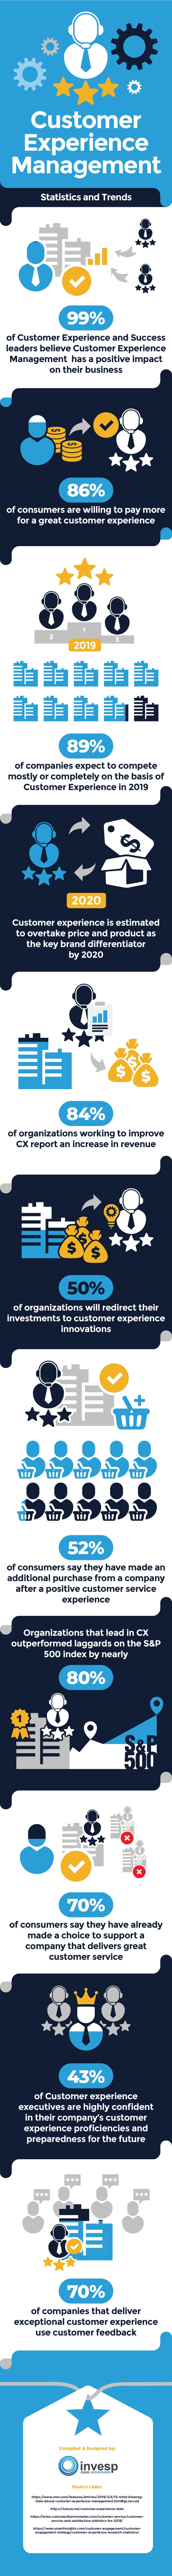 Why Customer Experience Management is Critical in Business [Infographic]